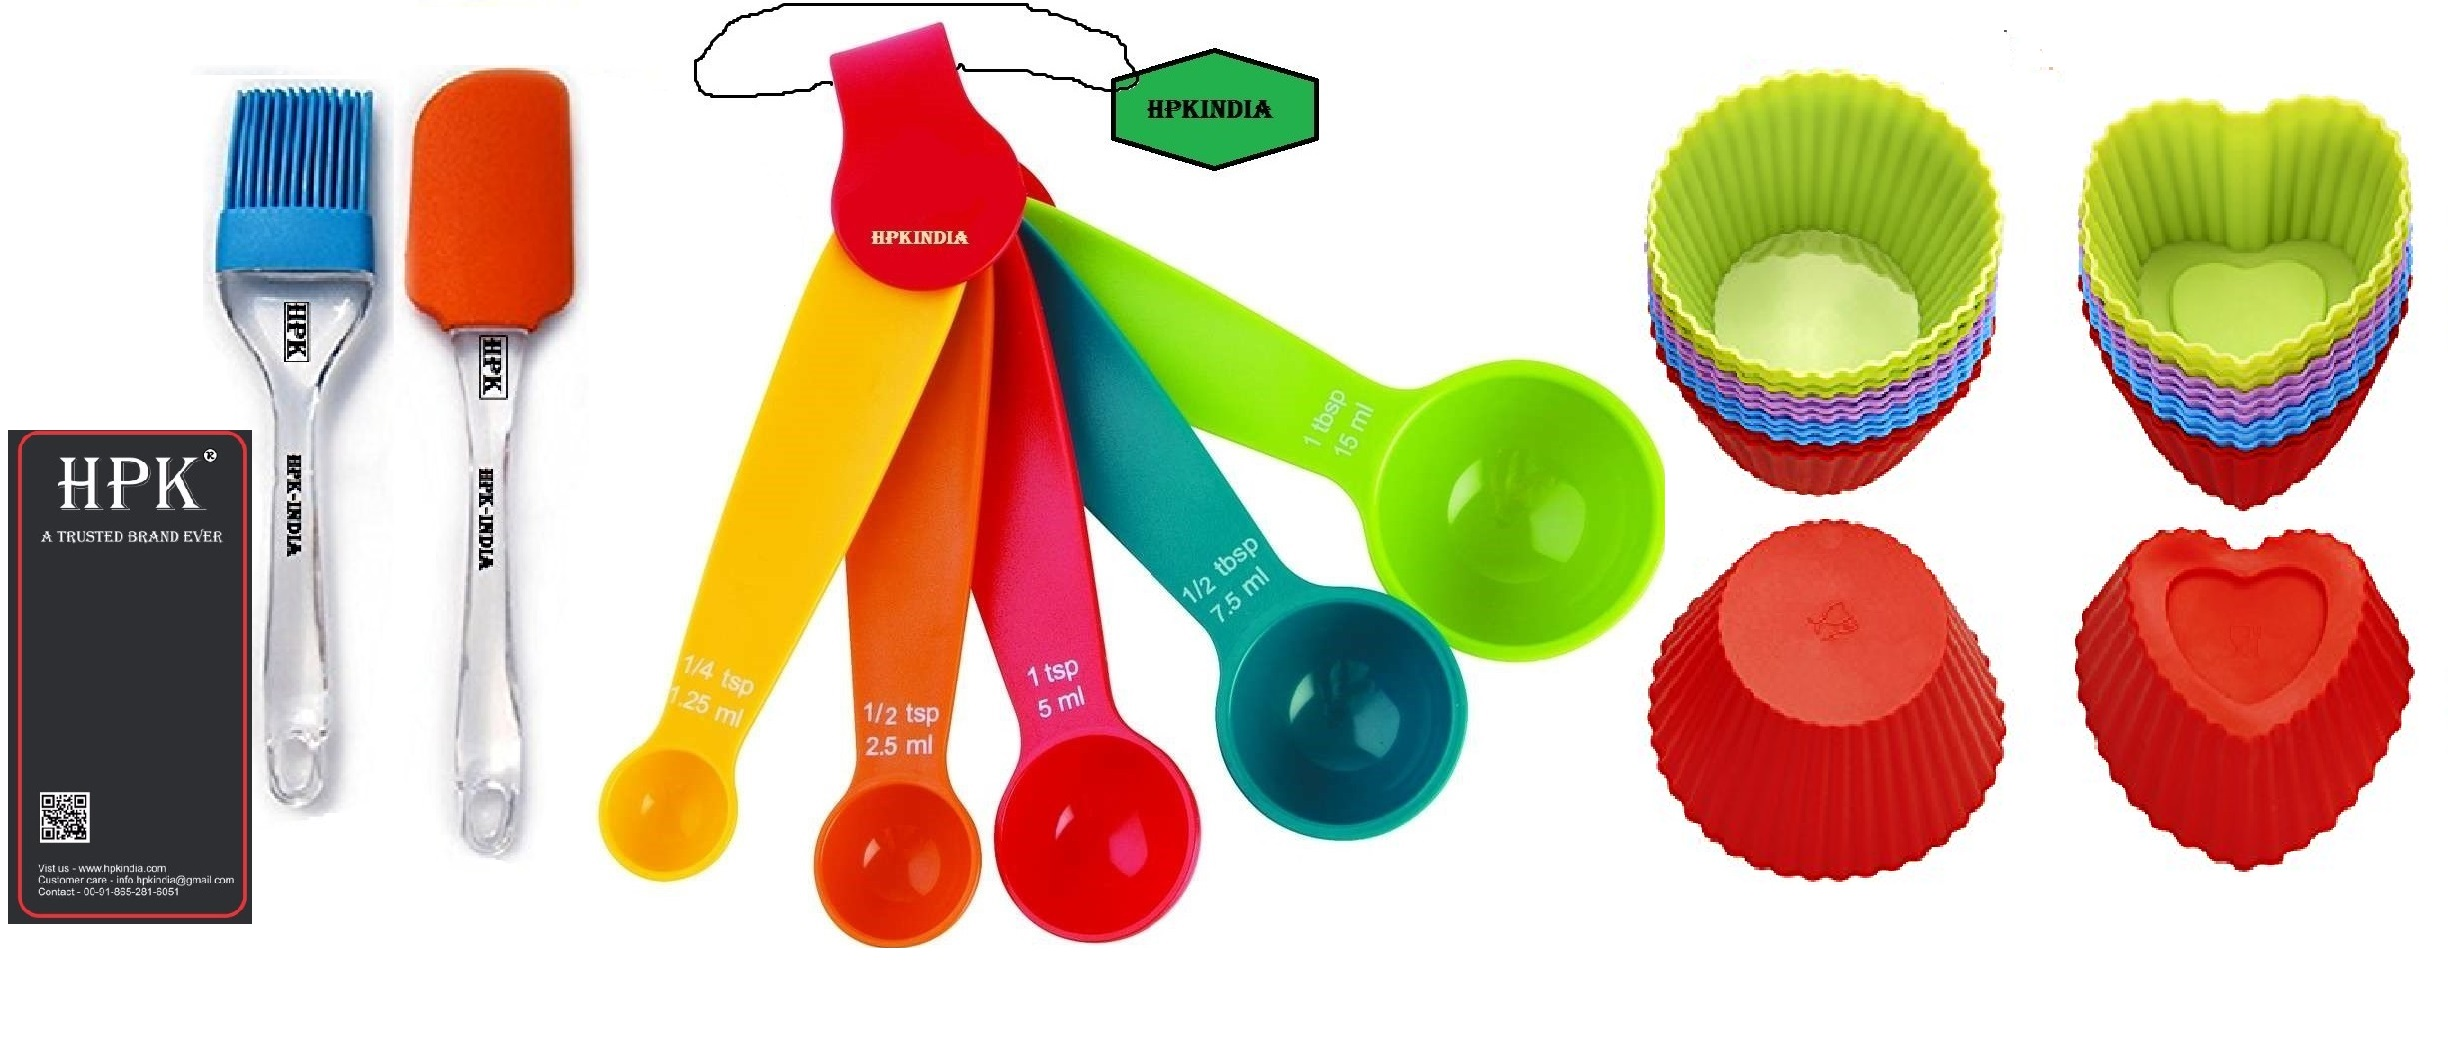 hpk-Baking-Measurement-Measuring-spoons-pastry brush and spatula heart and round molds Set